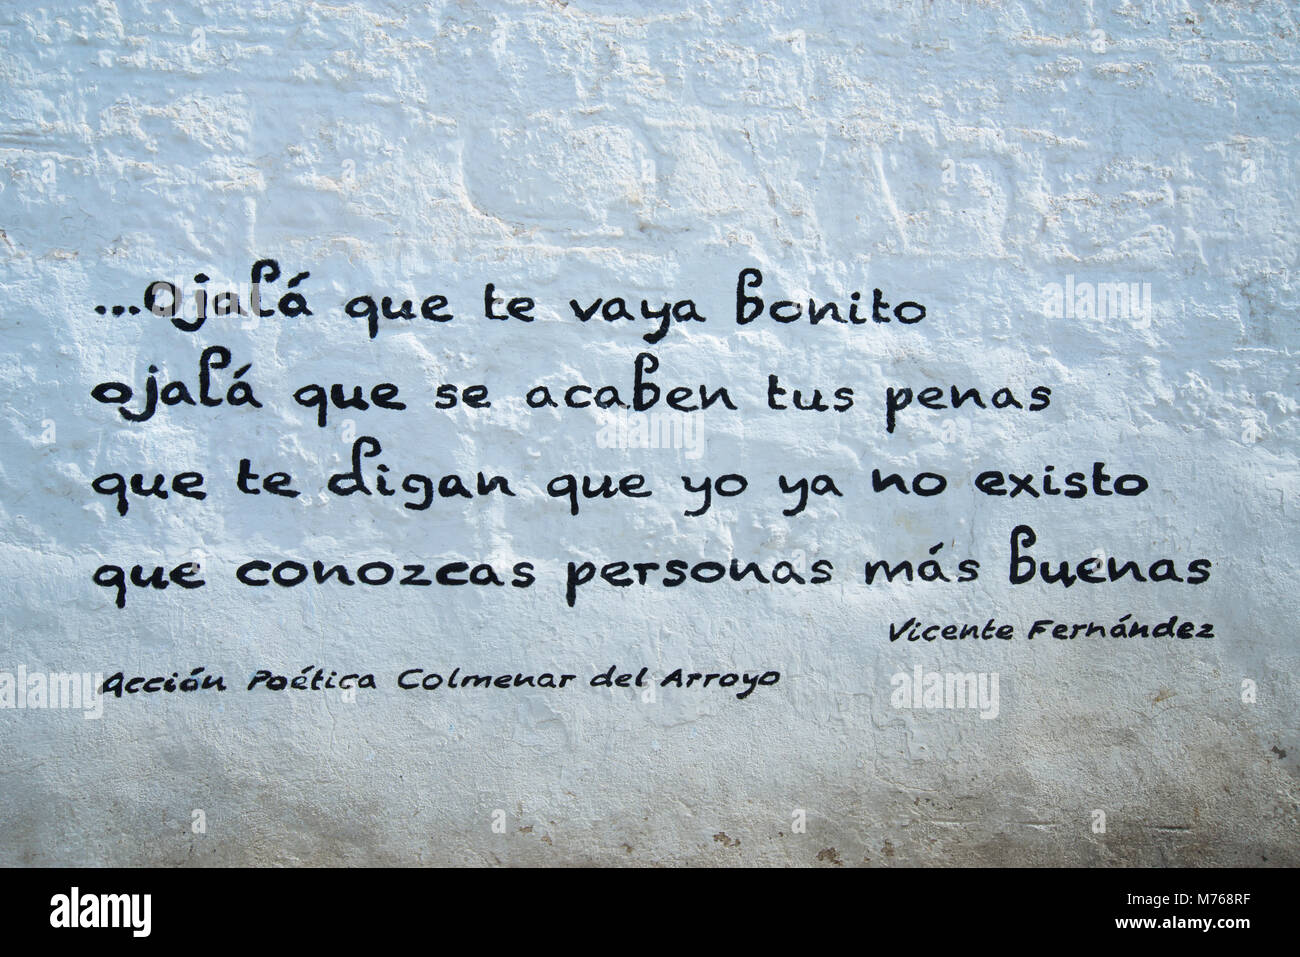 Poem written on a whitewashed wall. - Stock Image